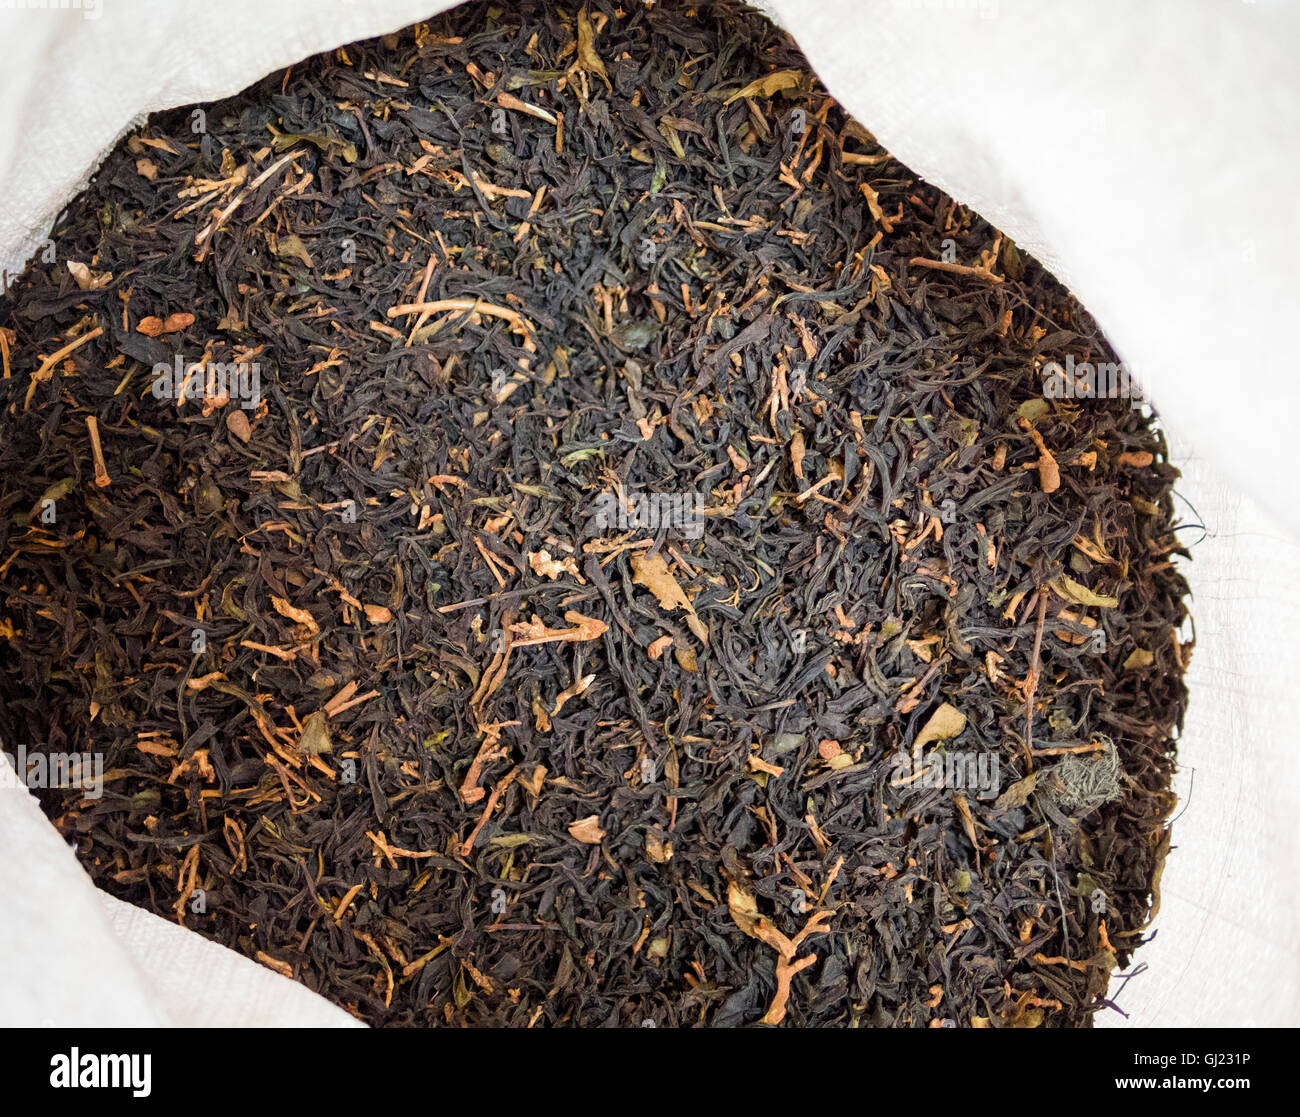 Detail of unsorted black tea in a sack. There's lots of stems and other debris that needs to be sorted out before - Stock Image